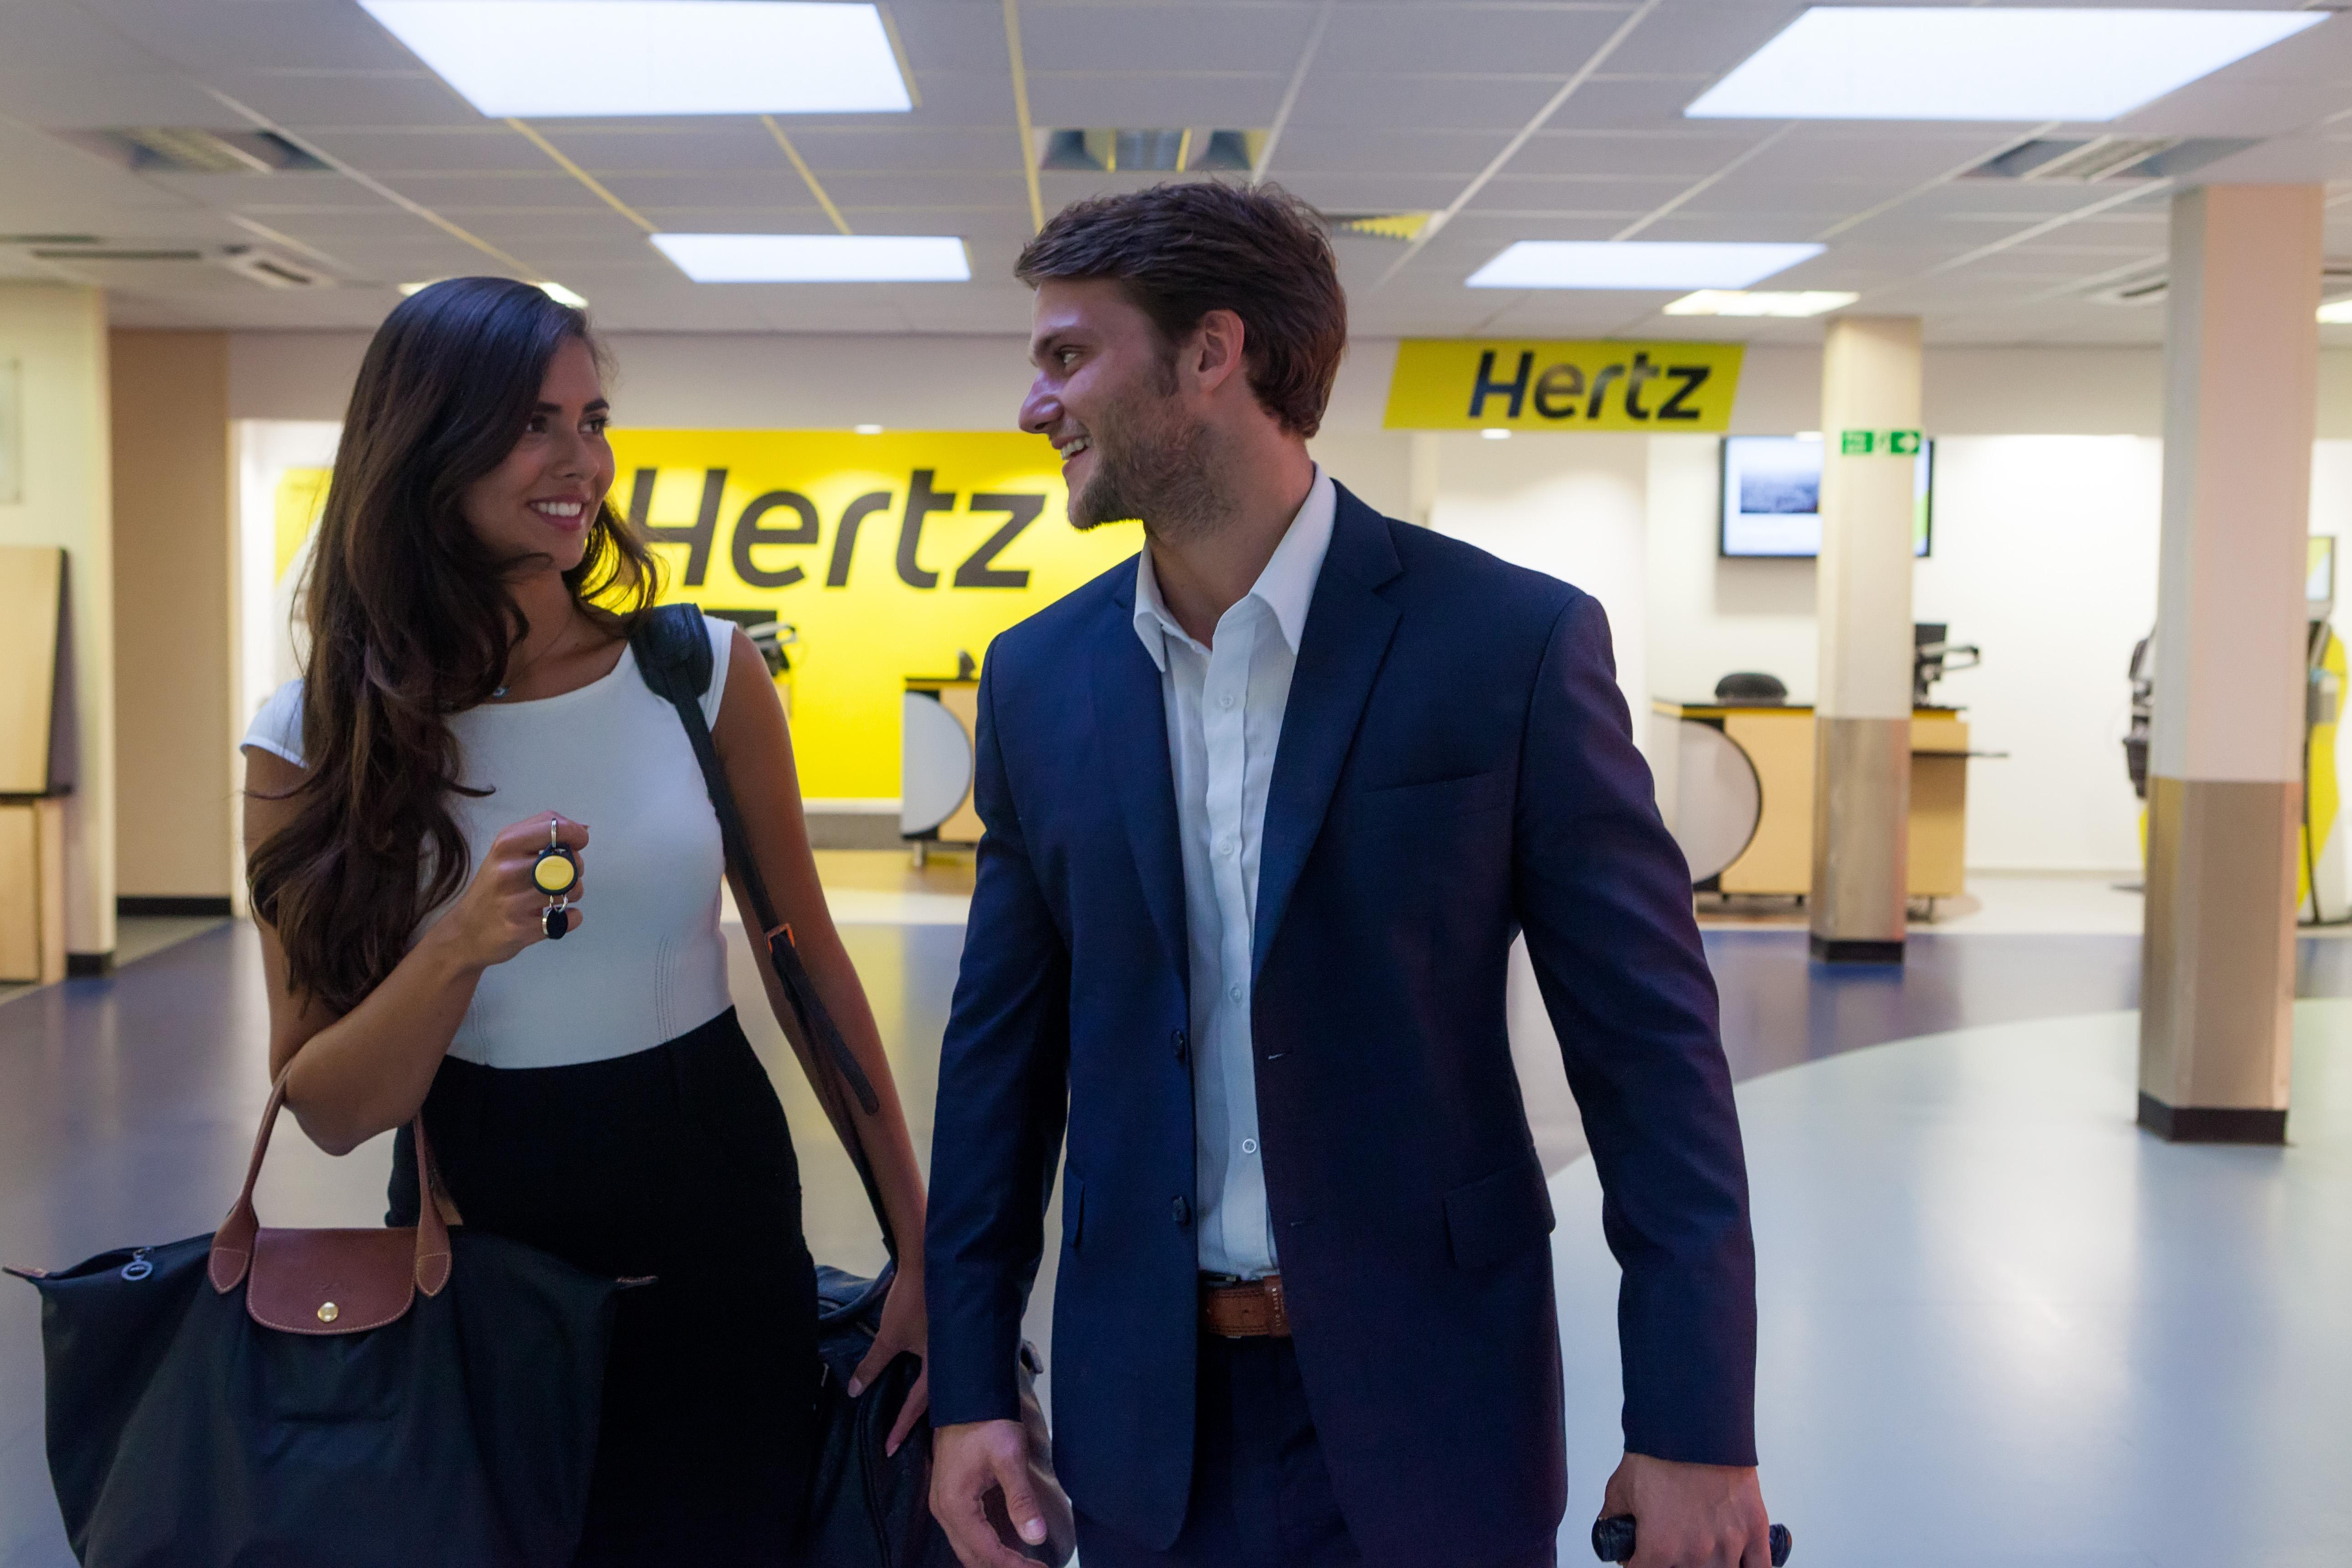 Hertz Reliable Car Rental In Hungary